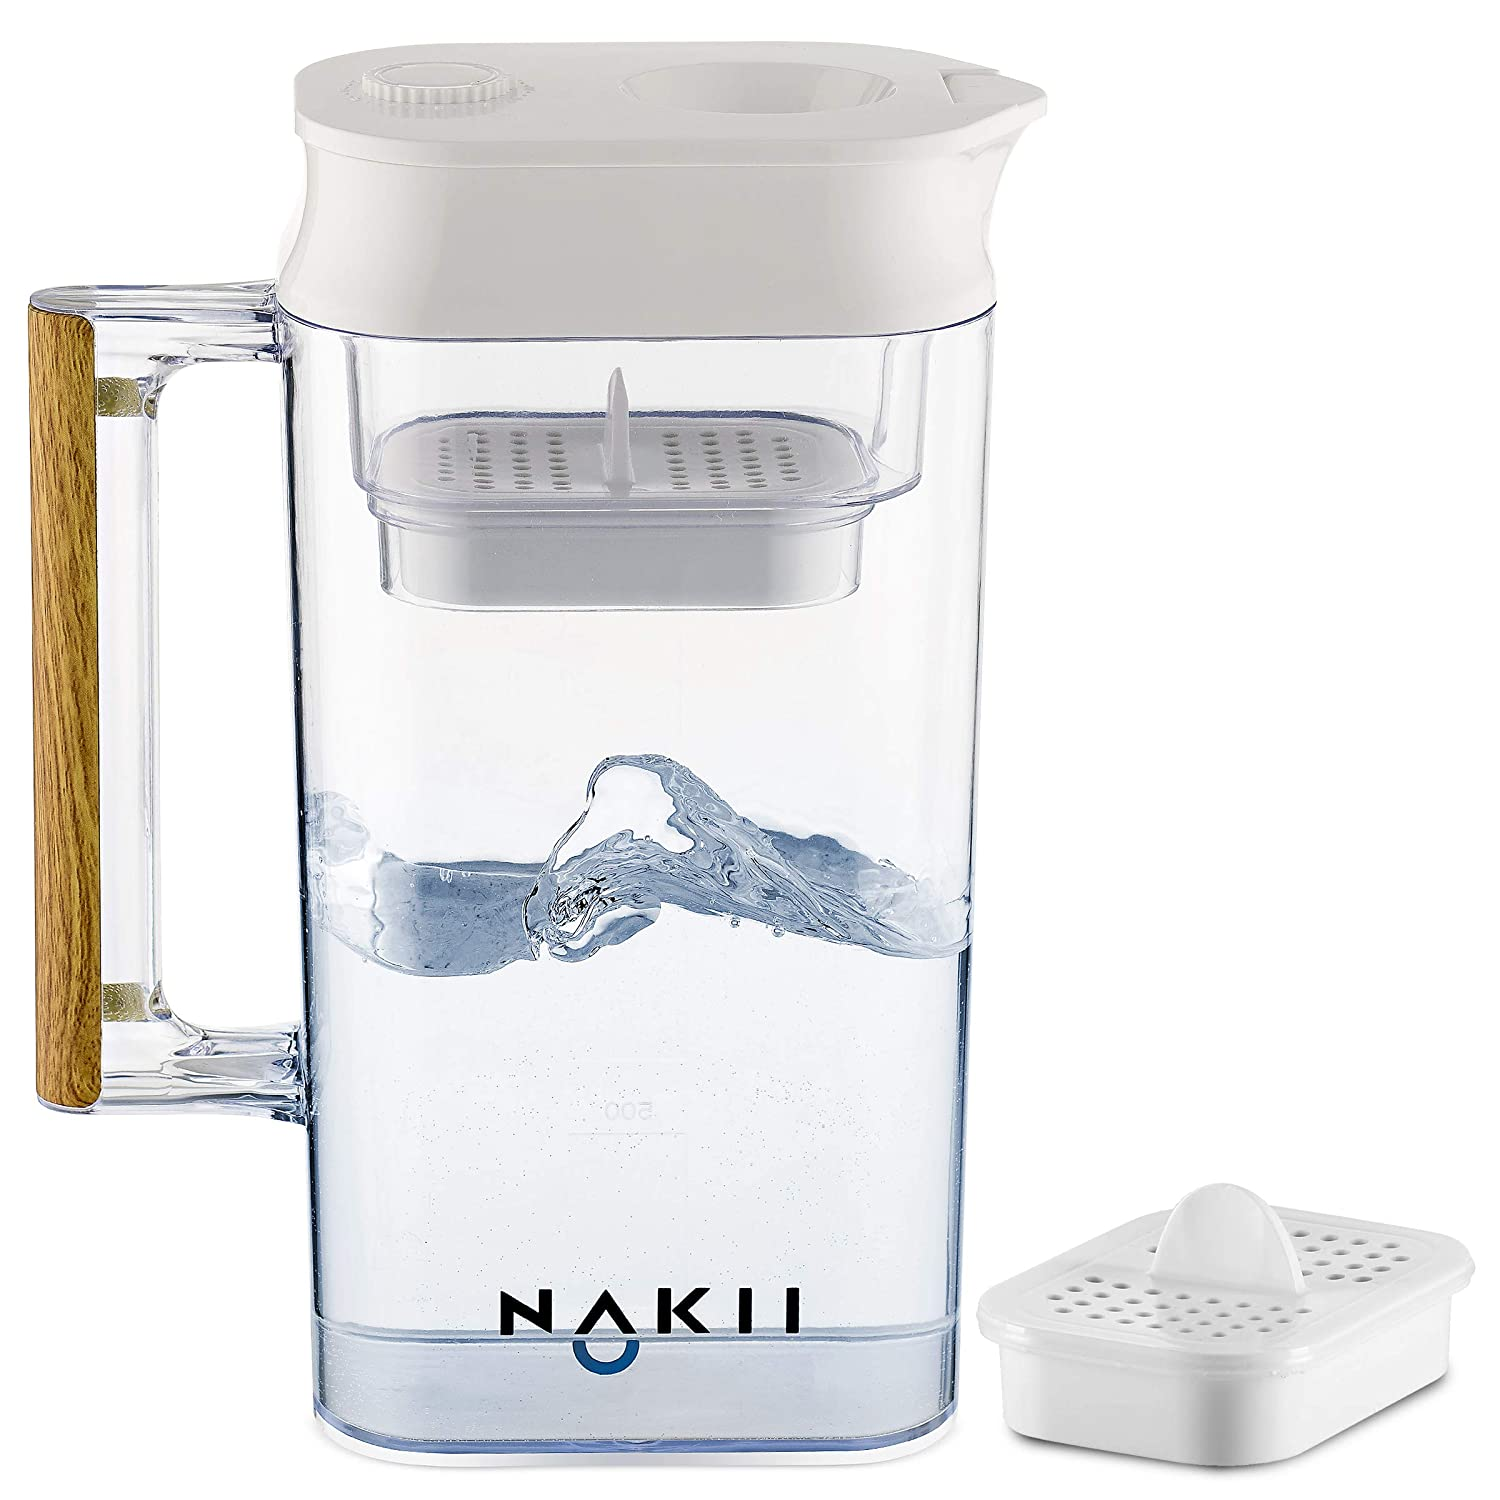 Nakii Water Filter Pitcher - Long Lasting (150 Gallons) | Supreme Fast Filtration and Purification Technology | Removes Chlorine, Metals & Sediments for Clean Tasting Drinking Water | WQA Certified